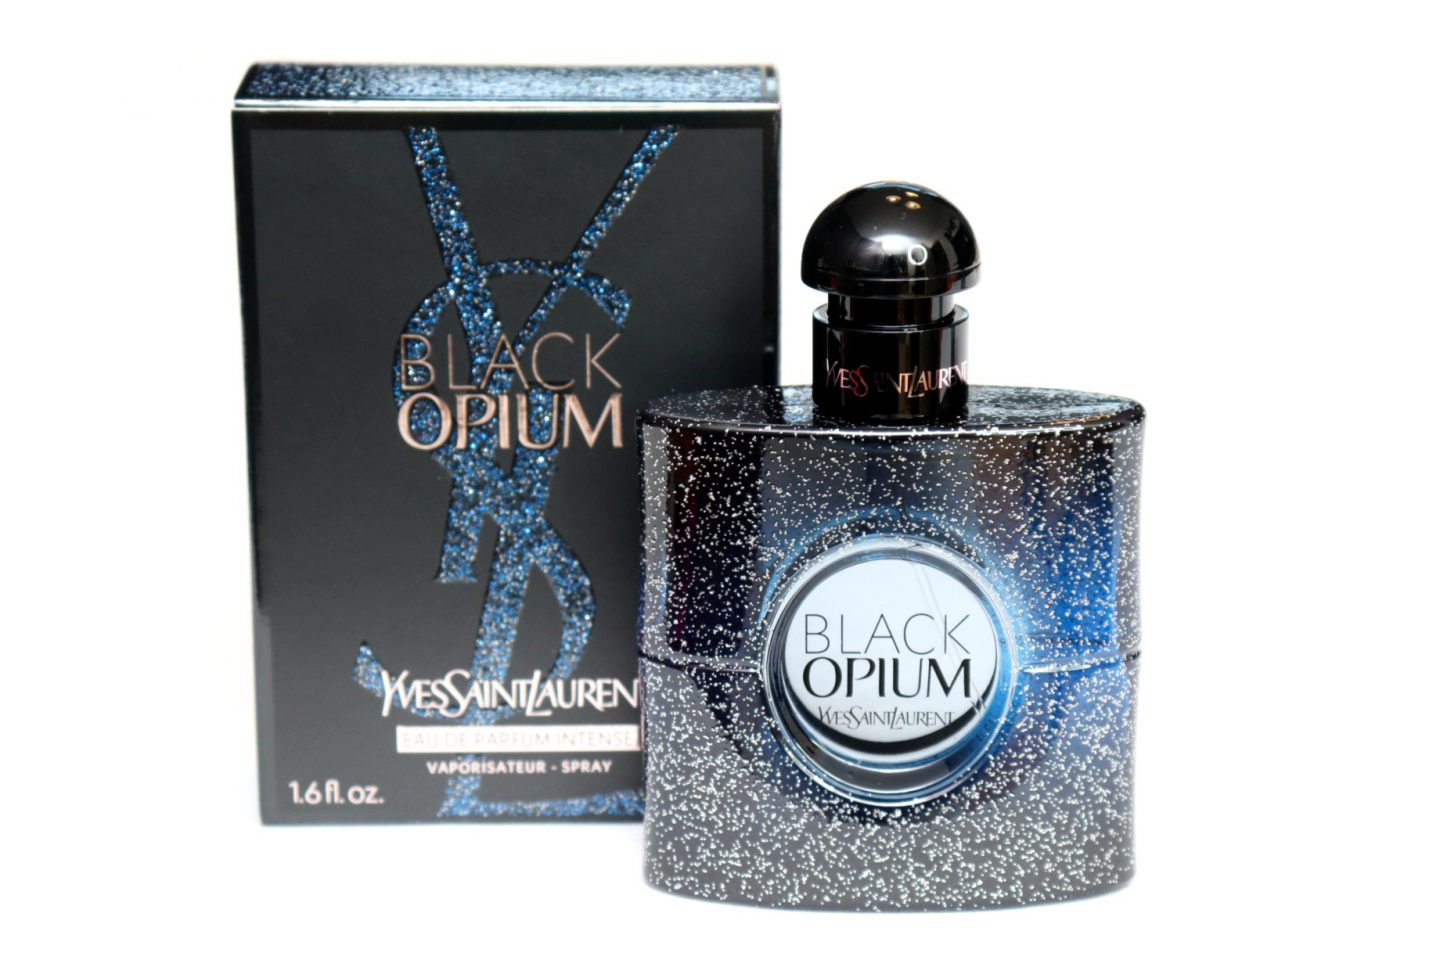 Yves Saint Laurent Black Opium Eau de Parfum Intense Review